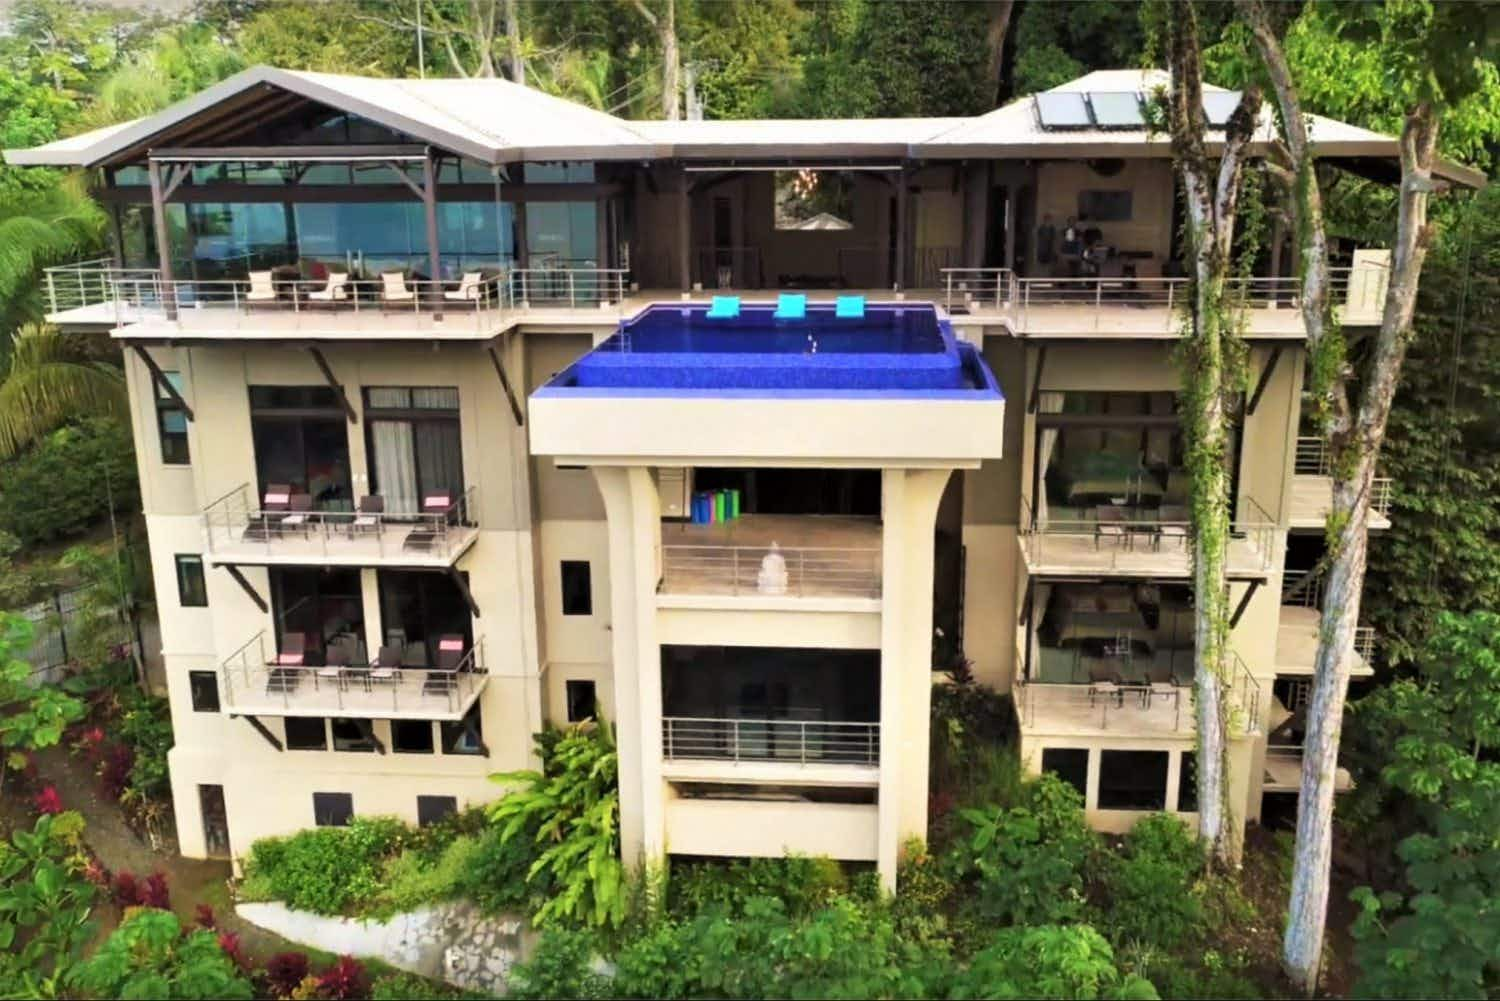 Rent this stunning eight-bedroom home in the wilderness of the Costa Rican jungle